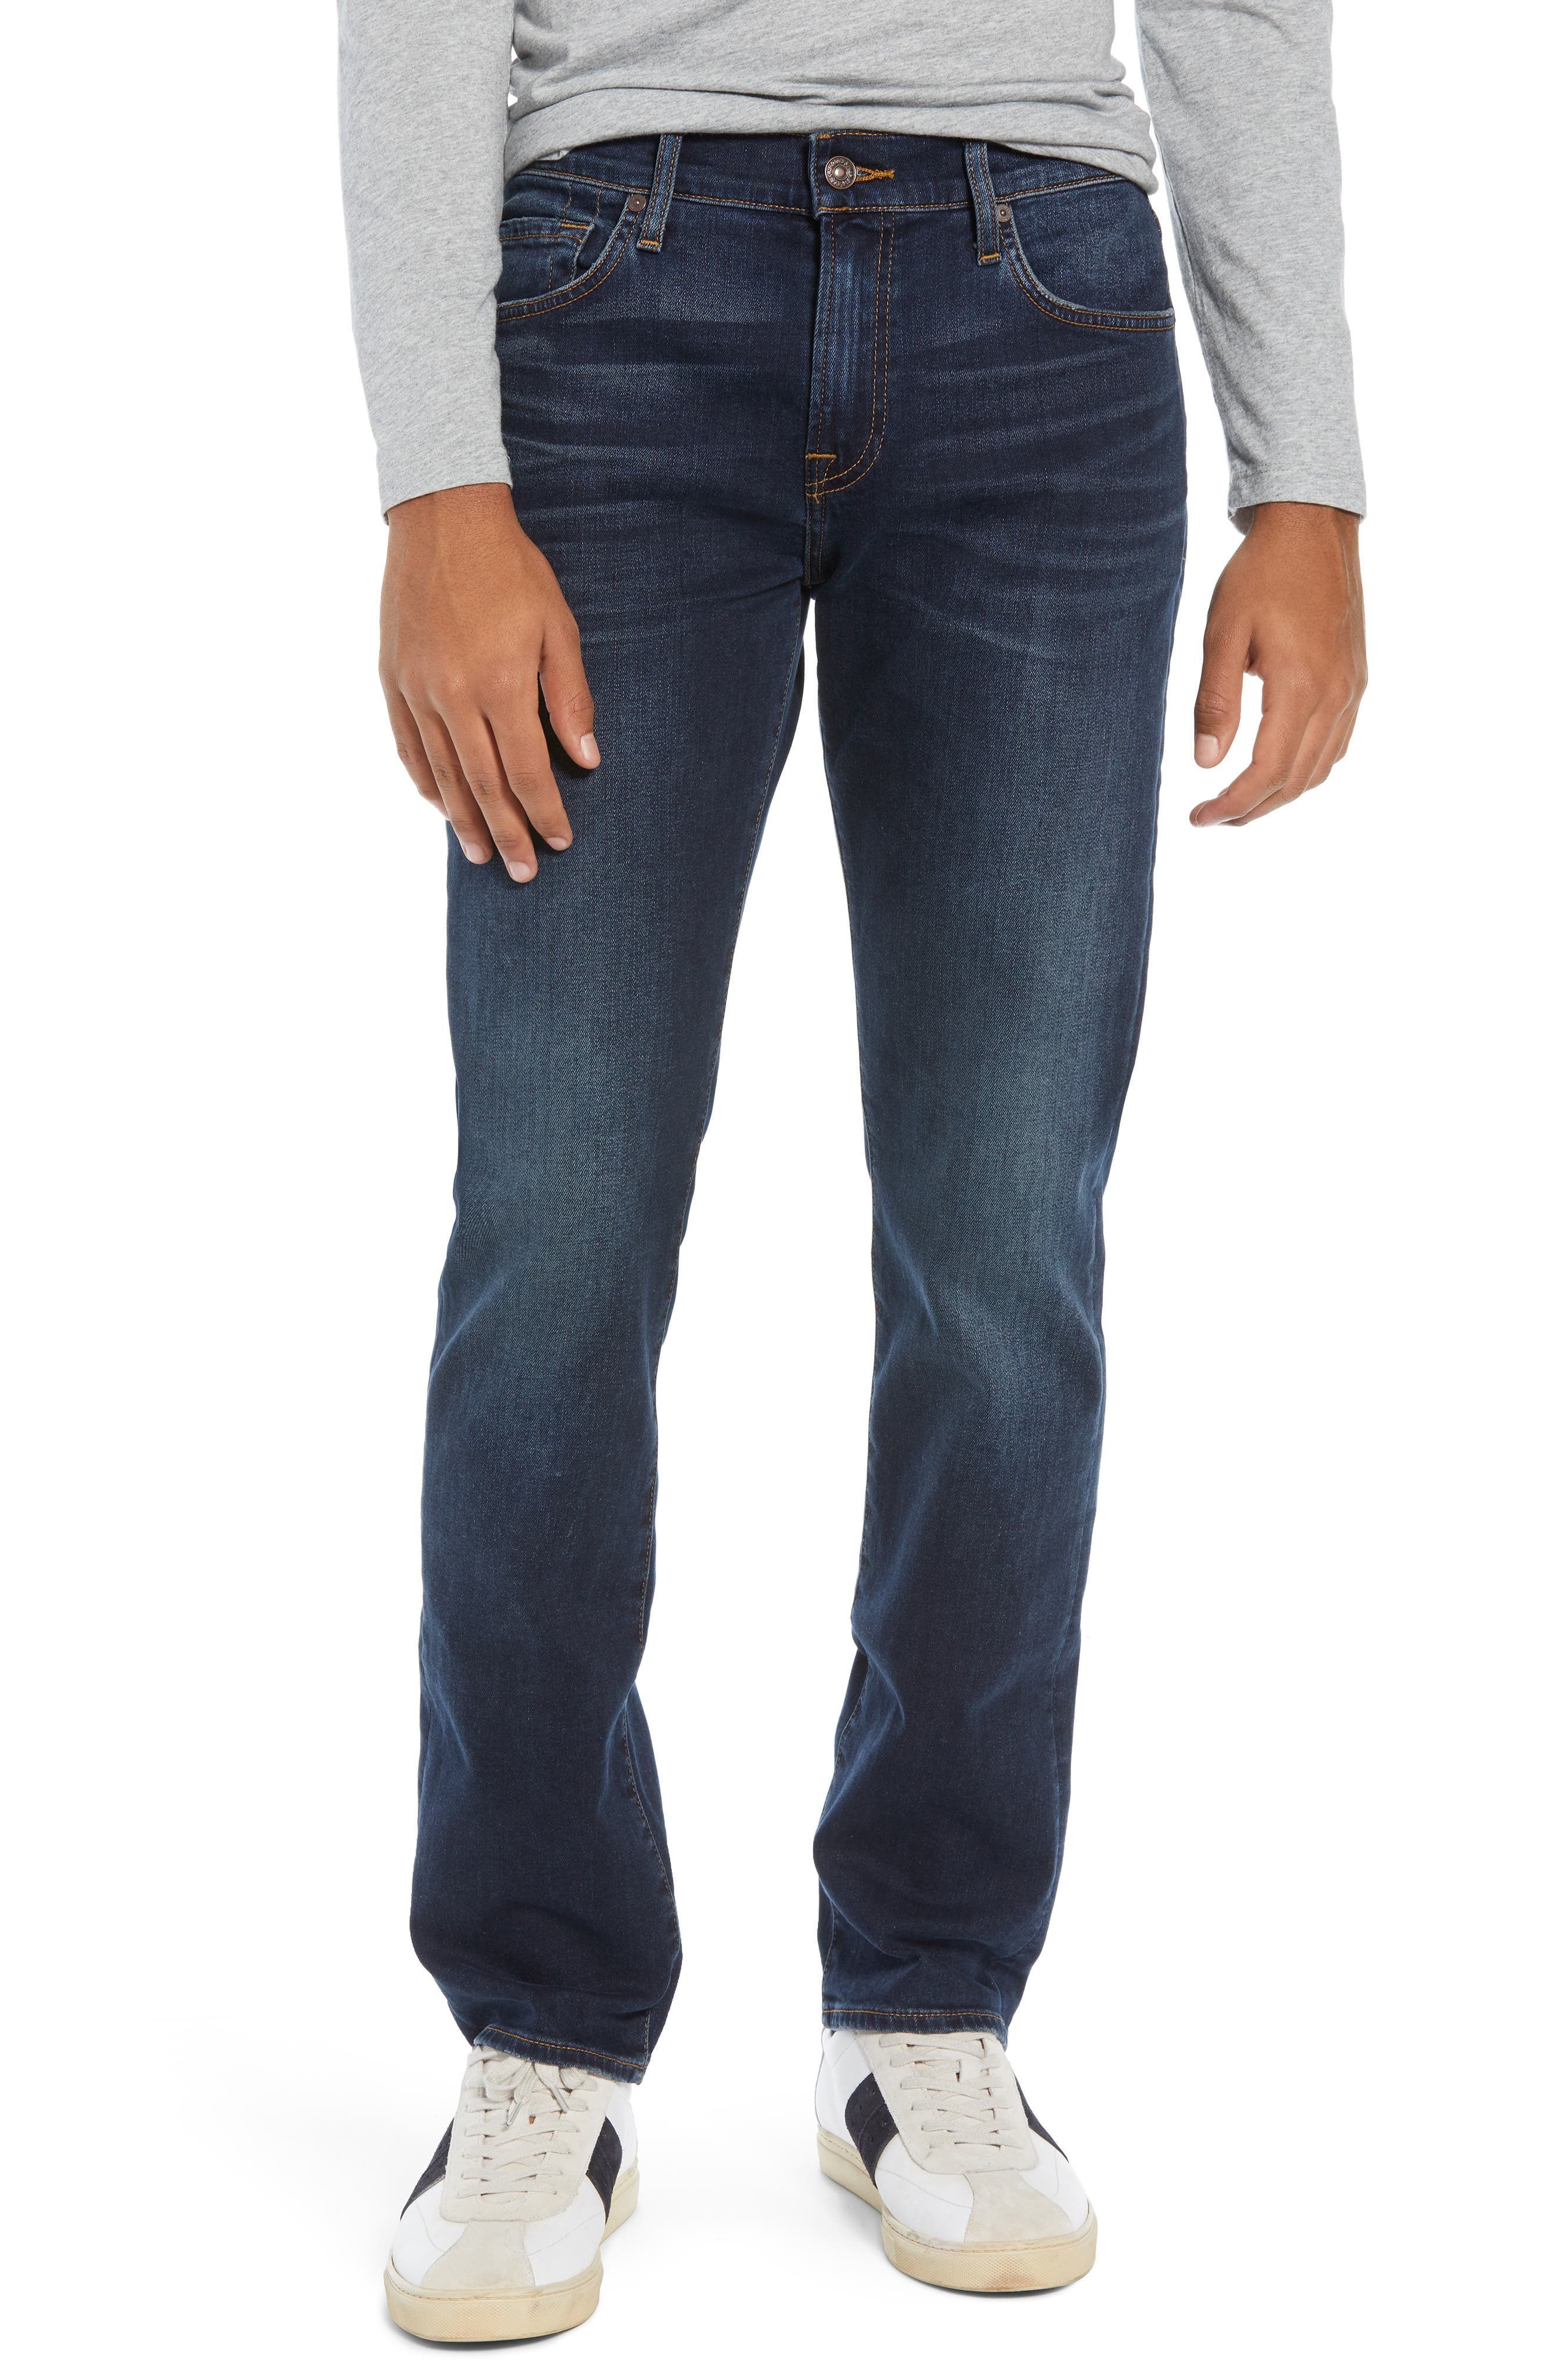 Slimmy Slim Fit Jeans,                         Main,                         color, LONEWOLF